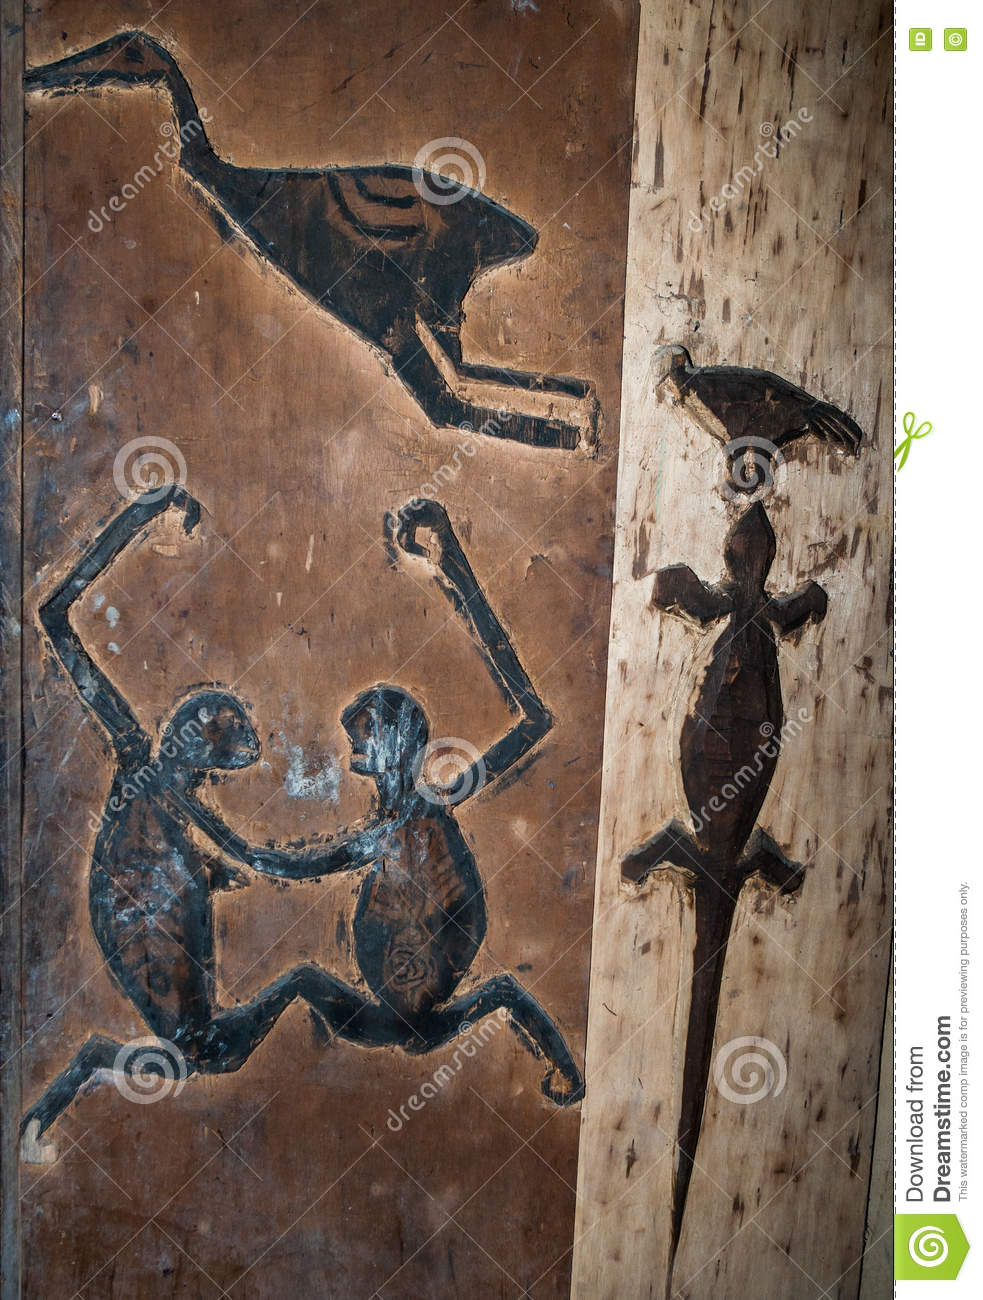 Fragments of the Mentawai tribe drawings in a traditional house.